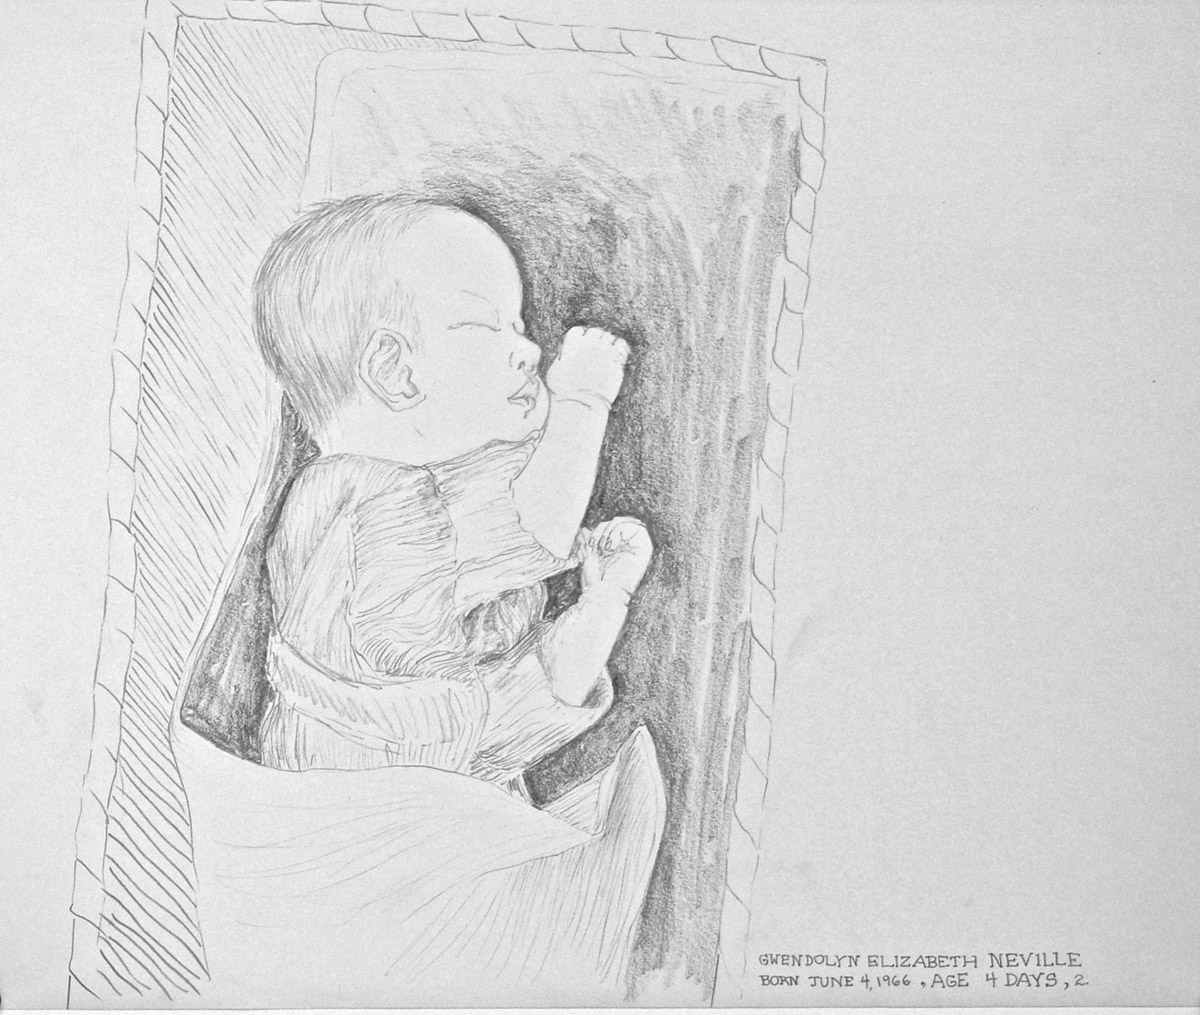 graphite drawing: Gwendolyn Elizabeth Neville, infant